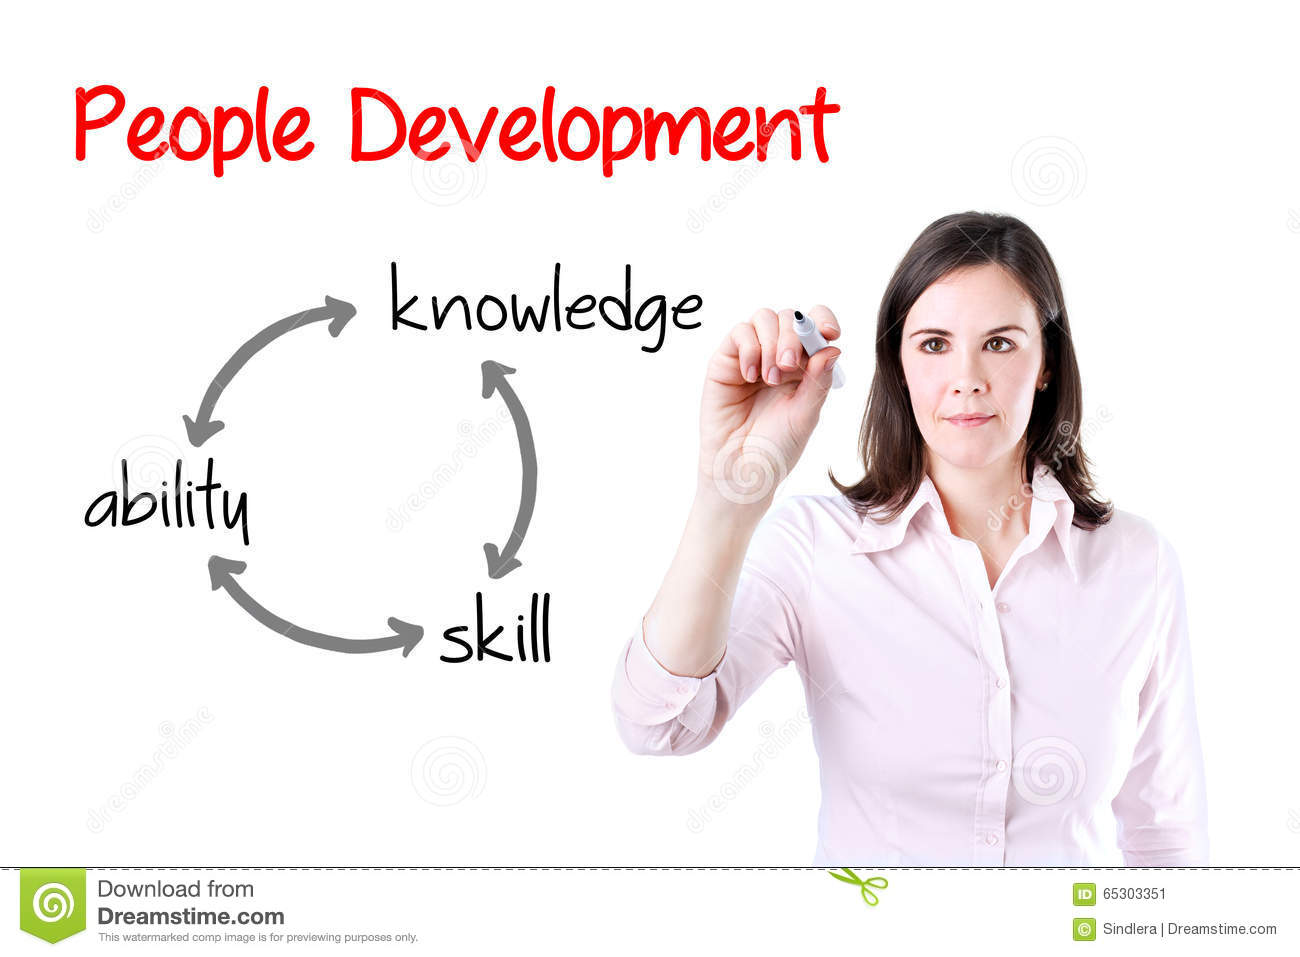 an analysis of the wisdom concept in peoples knowledge 3 thinking a change in philosophy requires unlearning industrial thinking evident in departmentalization, scarcity of knowledge and information competitiveness the industrial model discourages creativity and cooperative skills.